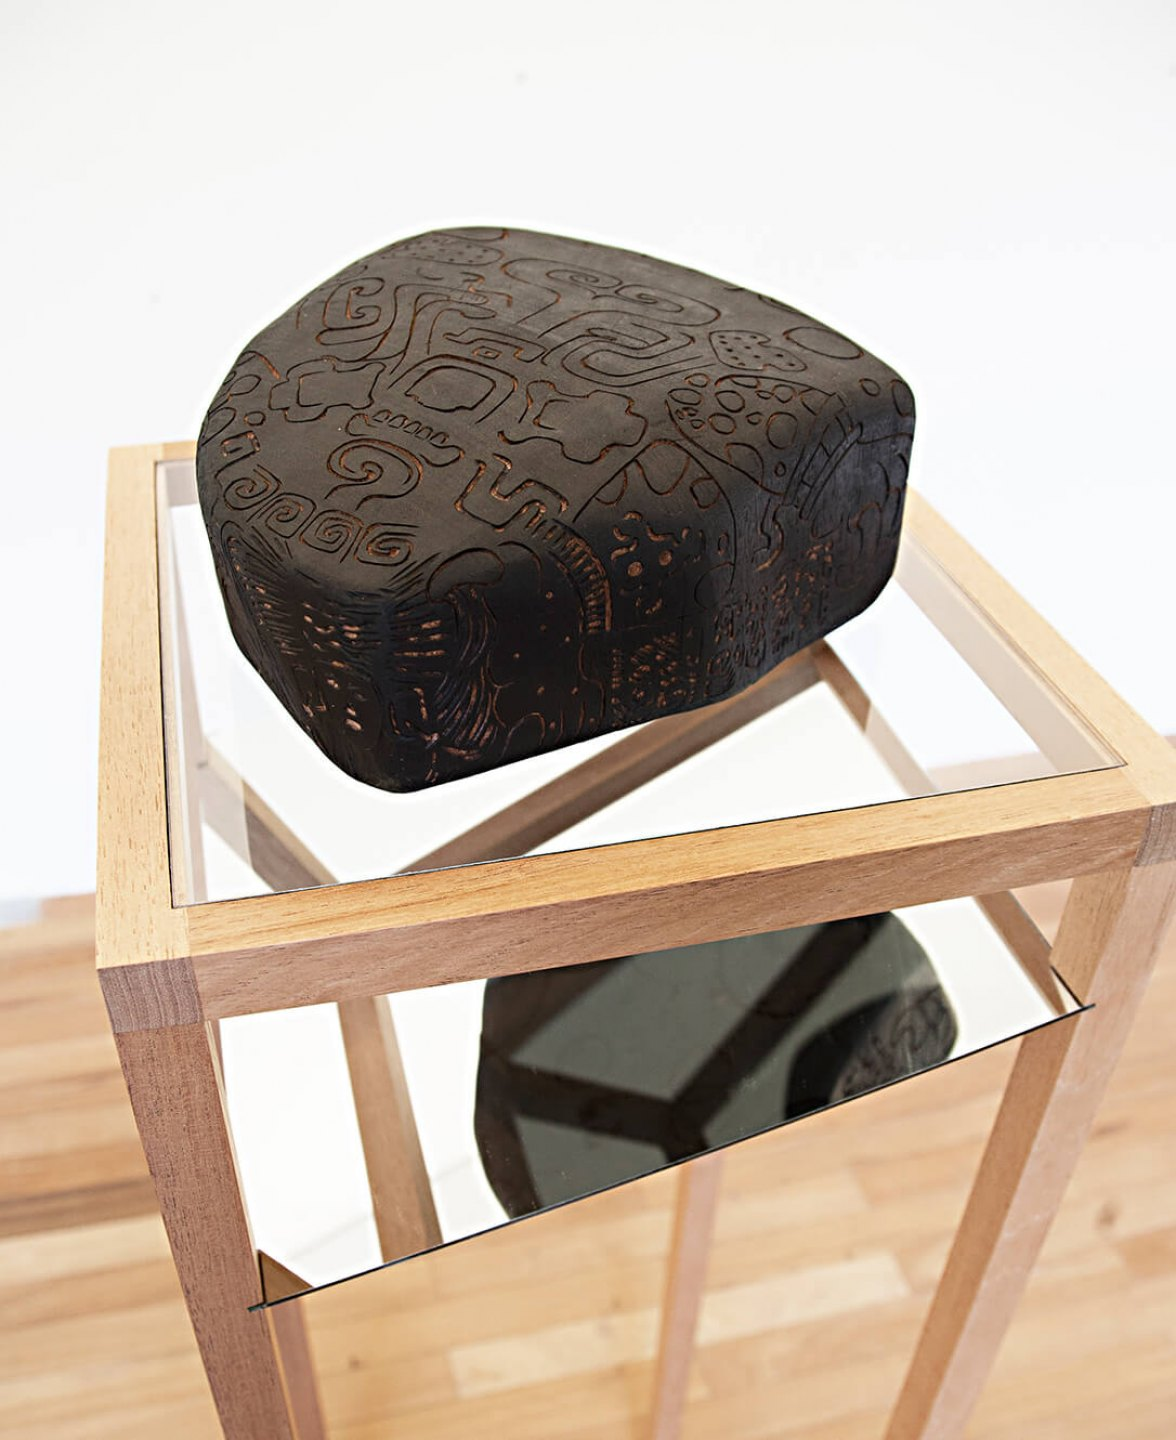 Mariana Castillo Deball, <em>Zoomorph G</em>, 2013, wooden carved sculpture mounted on base with mirror, 155 × 40 × 40 cm - Mendes Wood DM